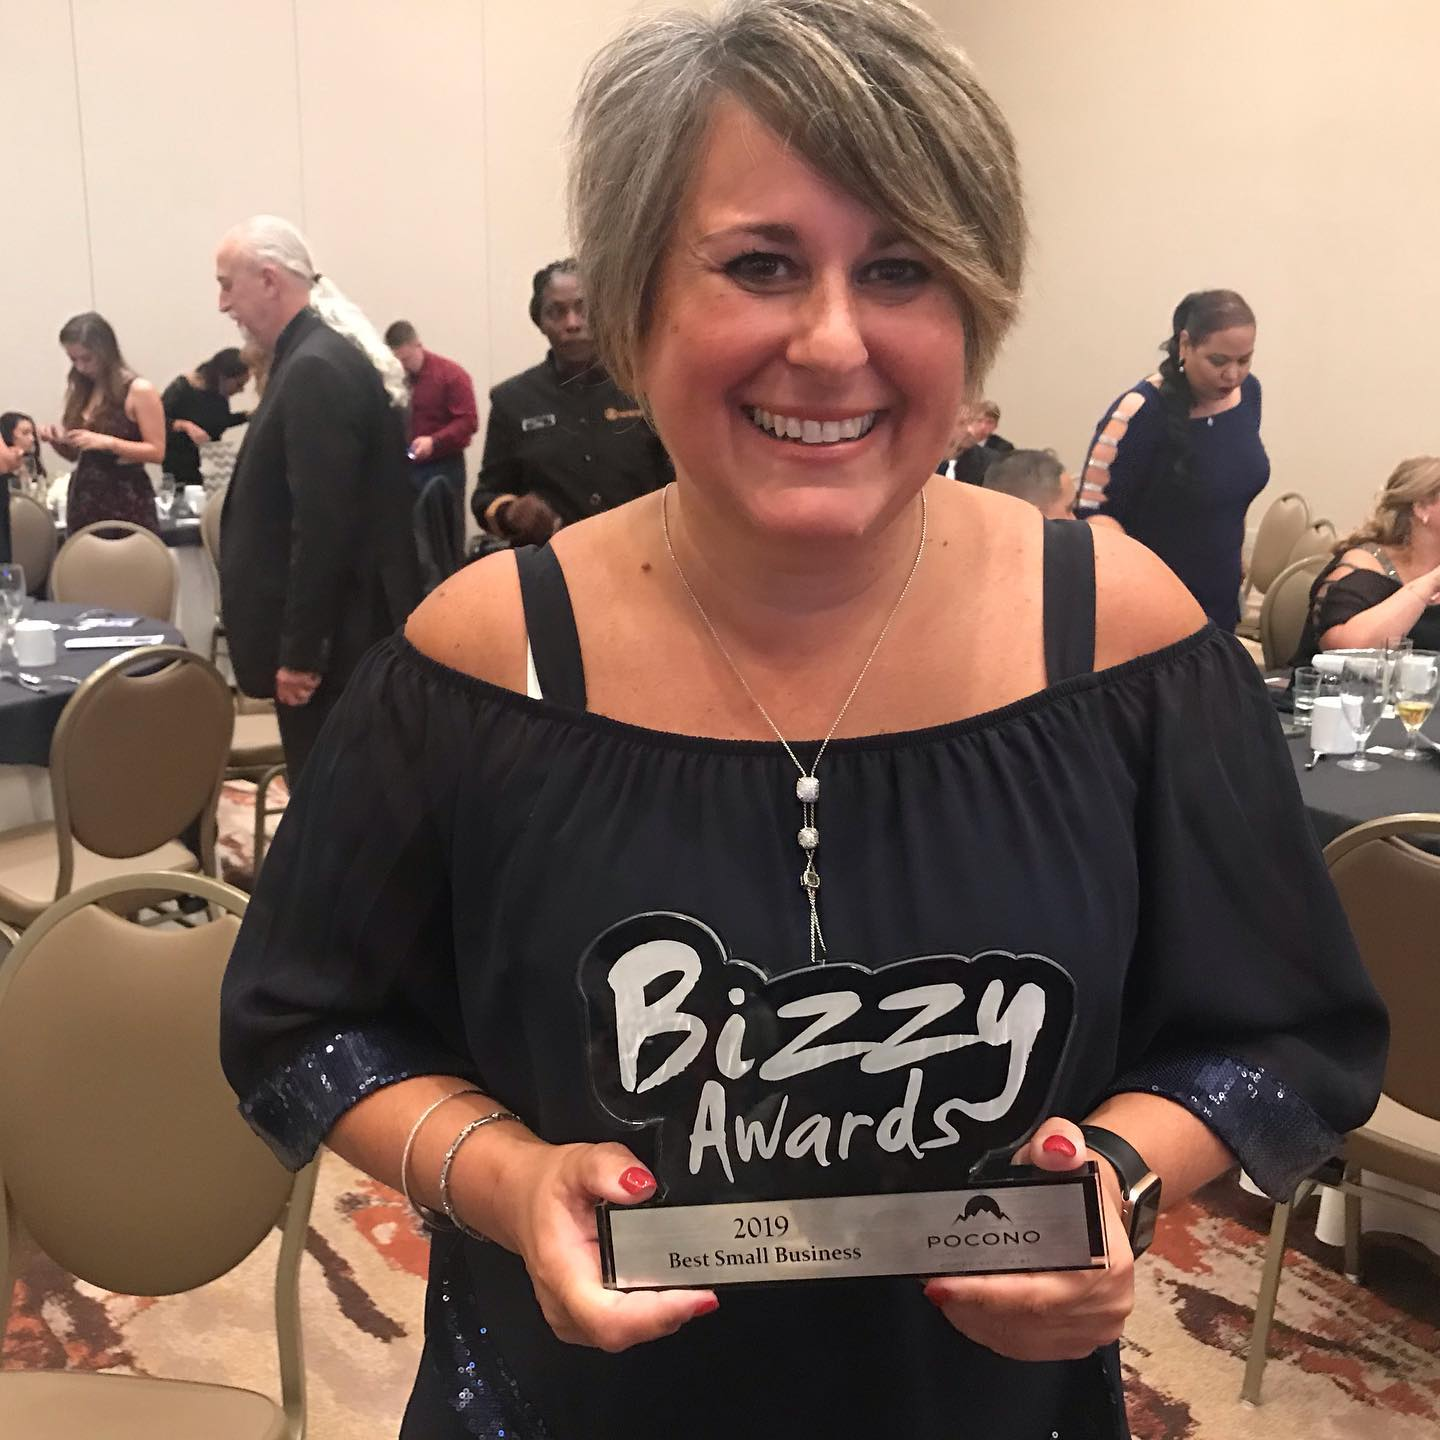 Award Winning 2019 Small Business of the Year